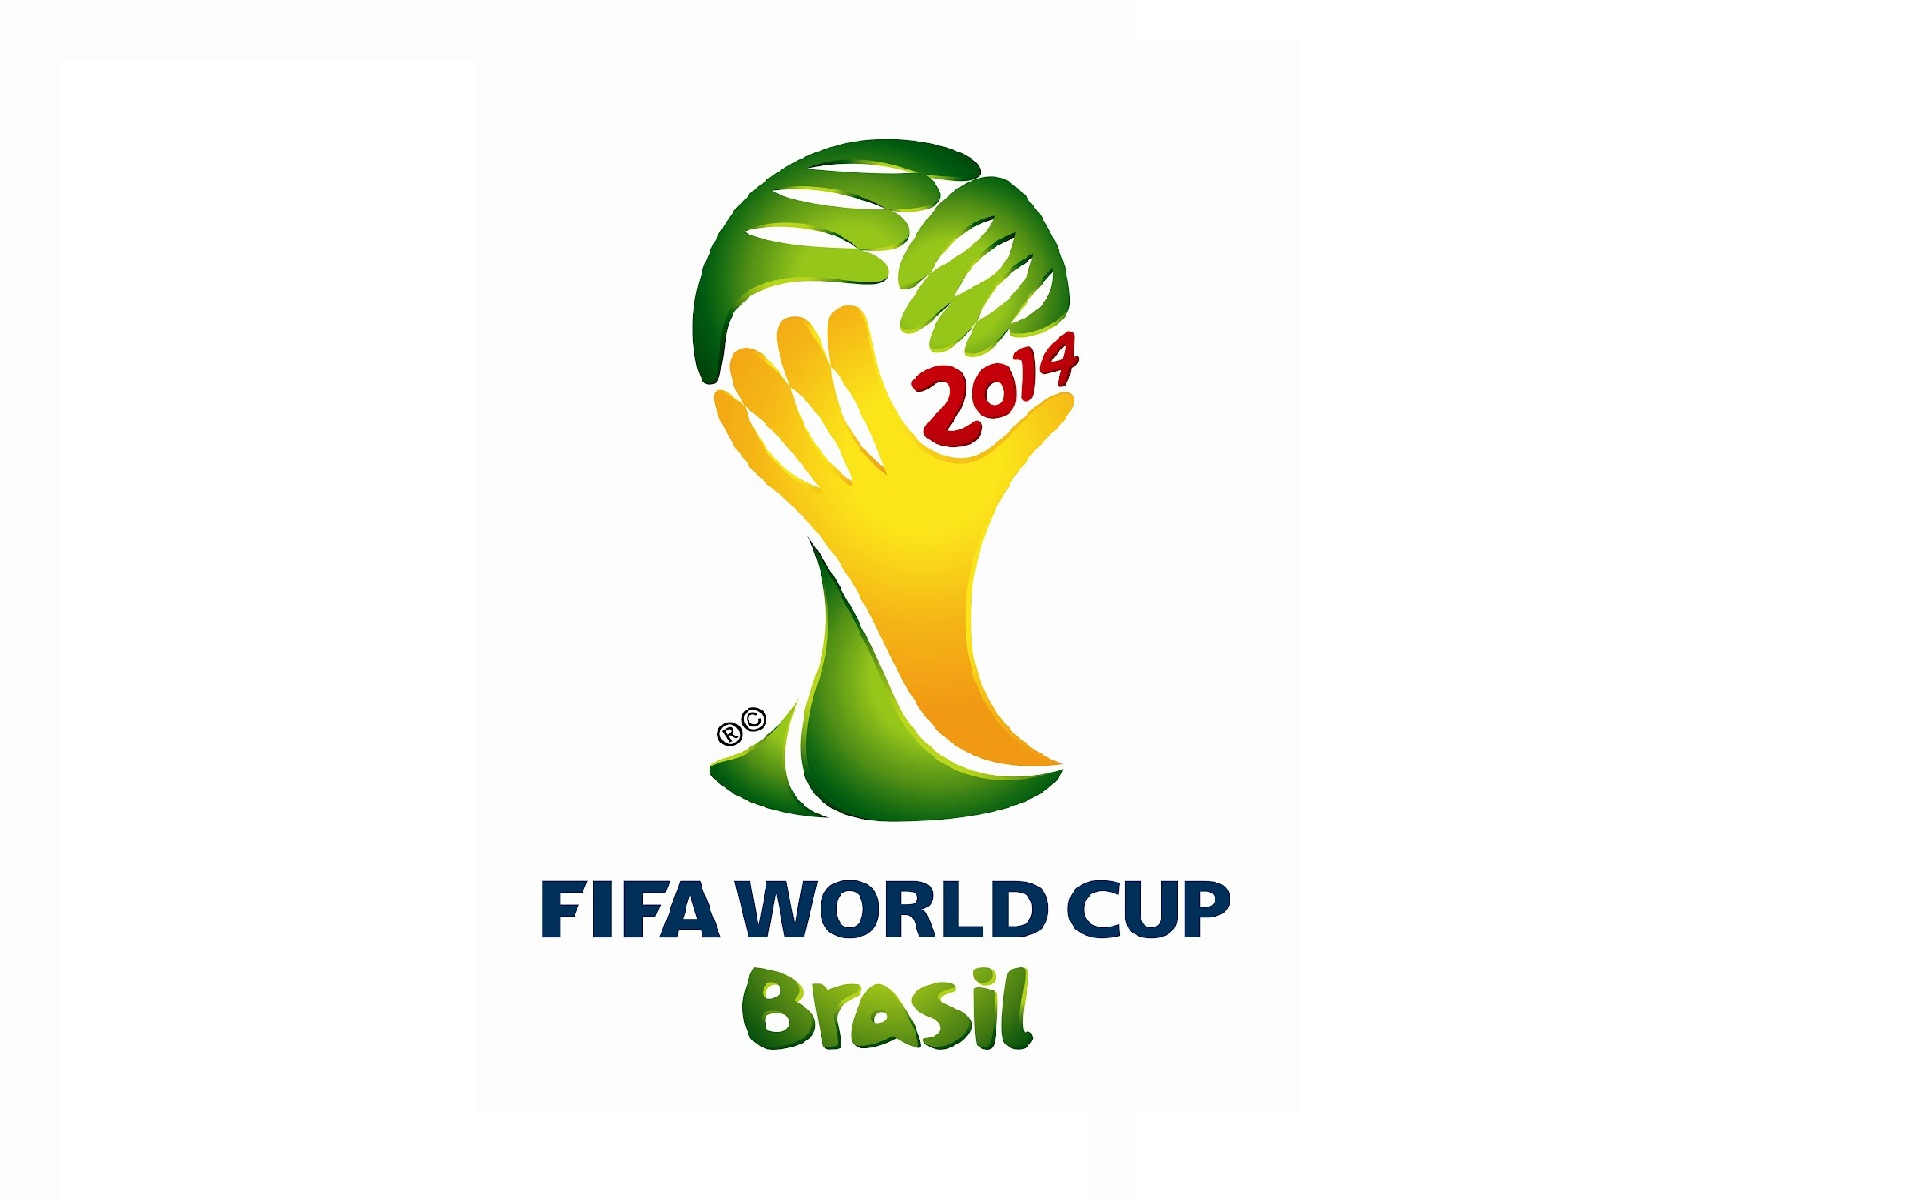 World Cup Brazil 2014 Logo Wallpaper Background Wallpaper